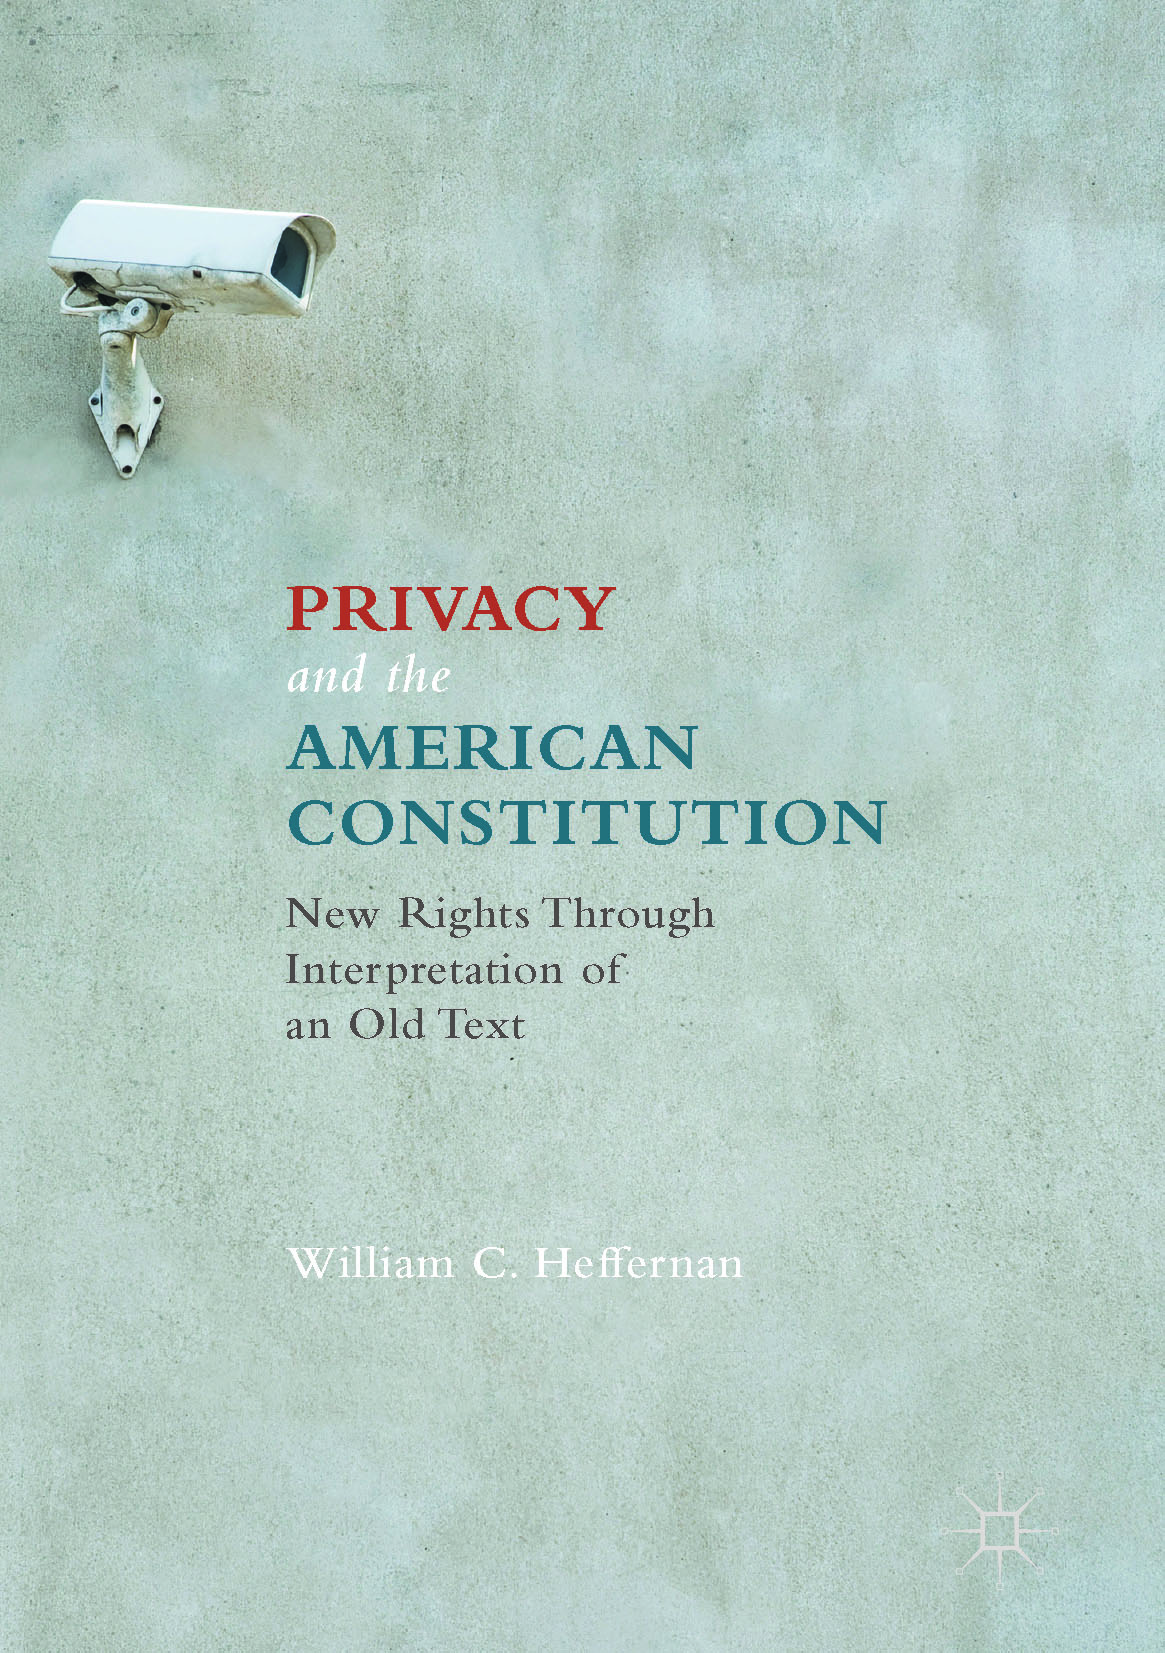 Heffernan, William C. - Privacy and the American Constitution, ebook